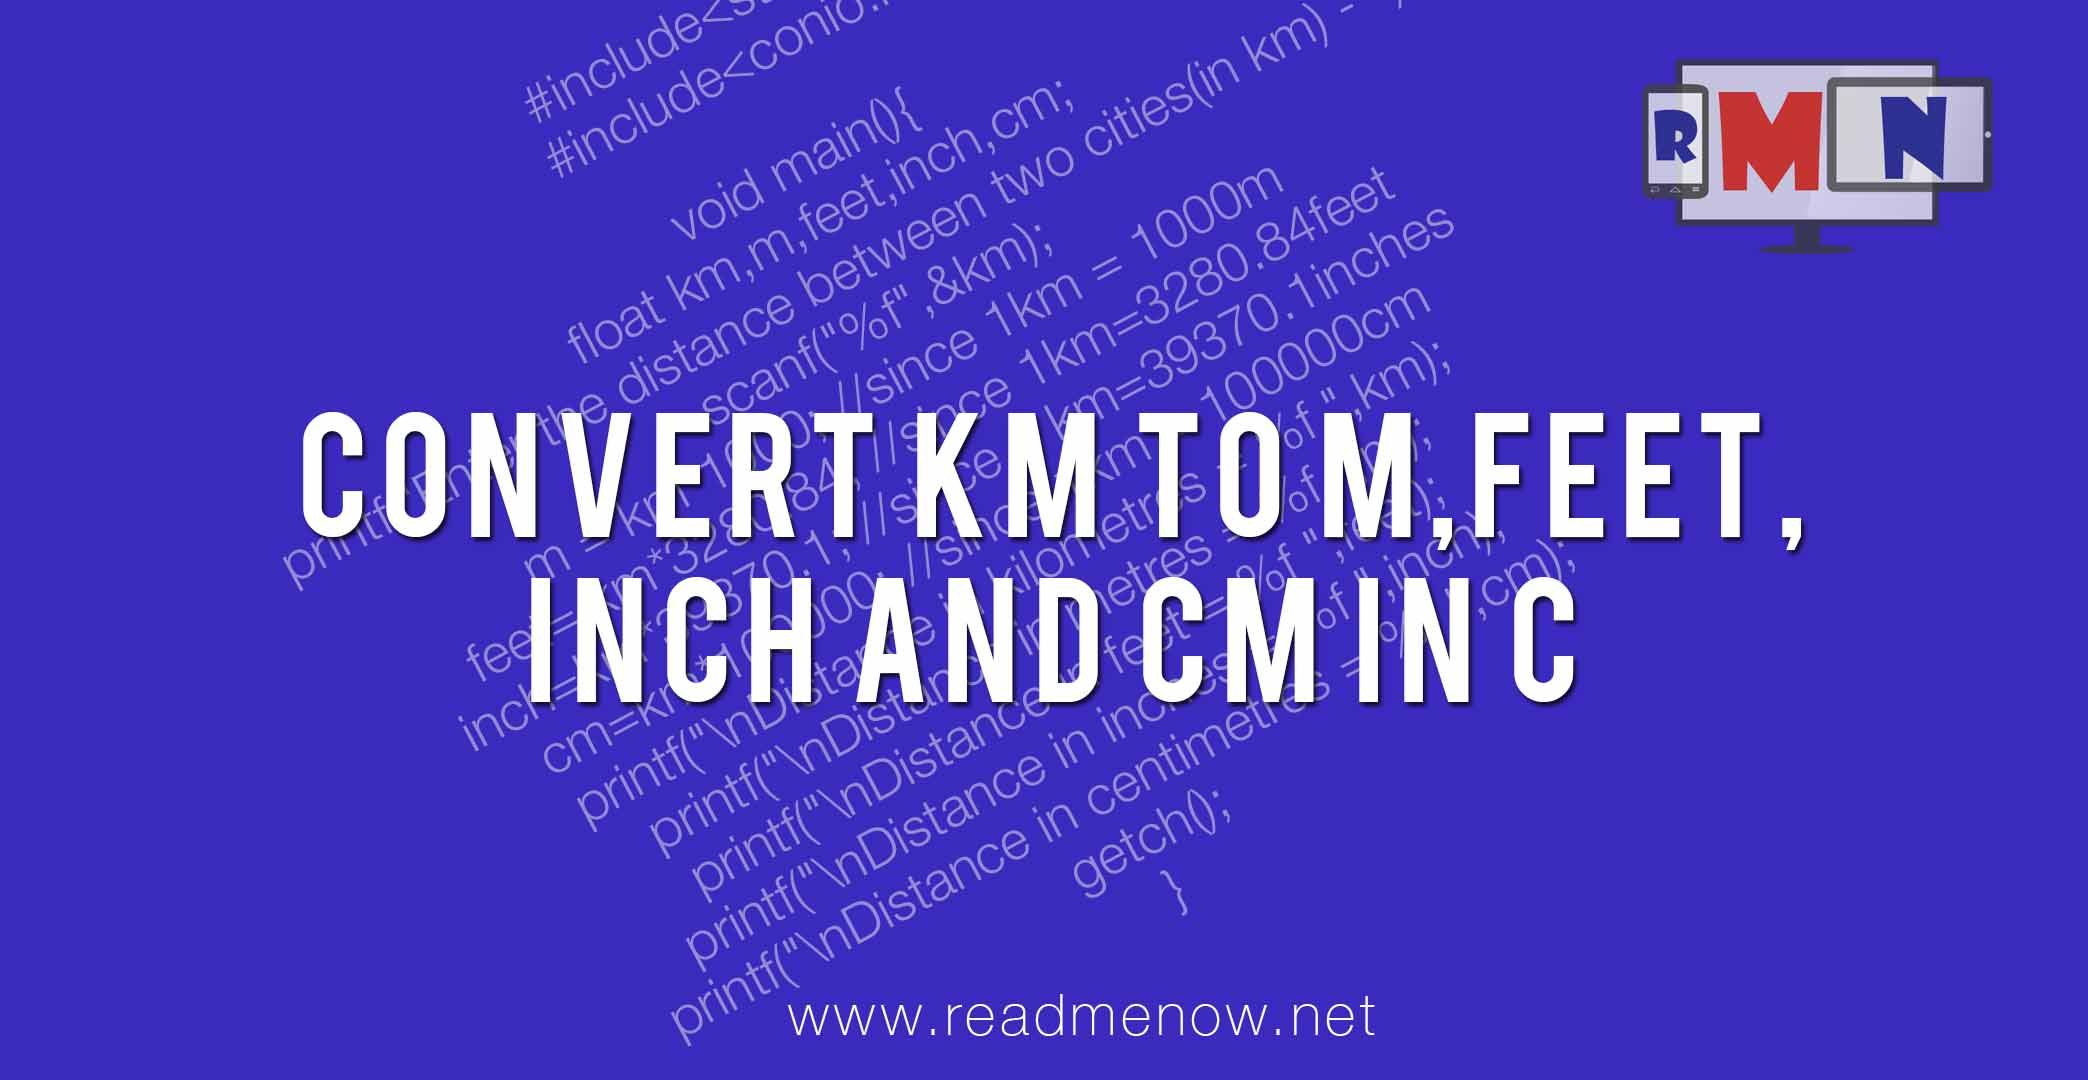 Convert km to mfeetinch and cm in c readmenow nvjuhfo Images